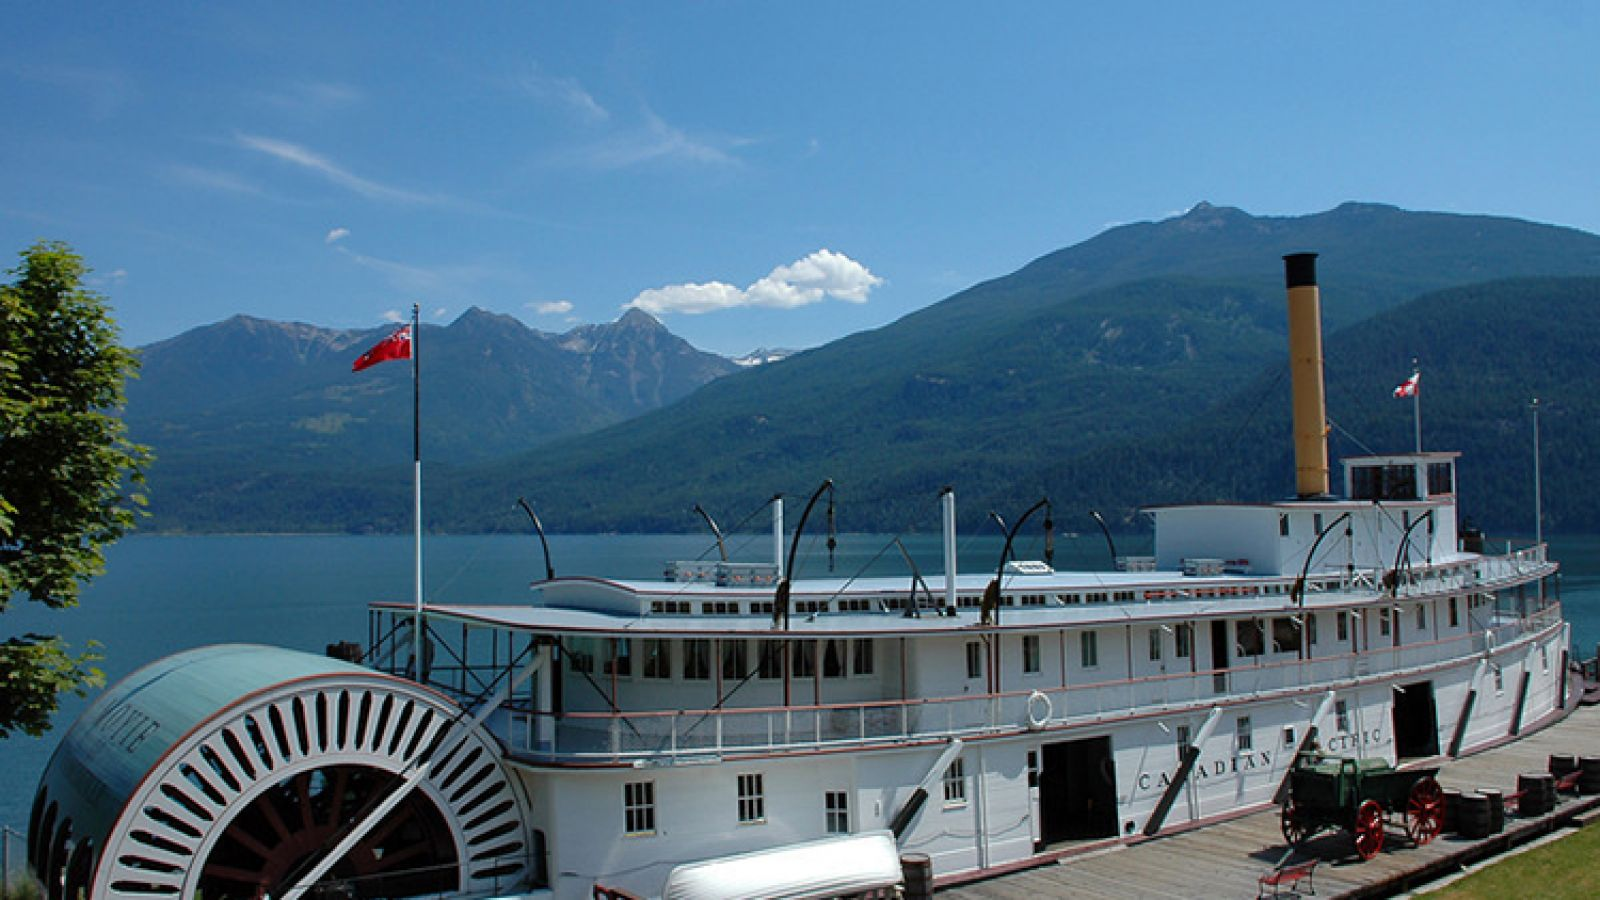 The historic SS Moyie in the village of Kaslo.